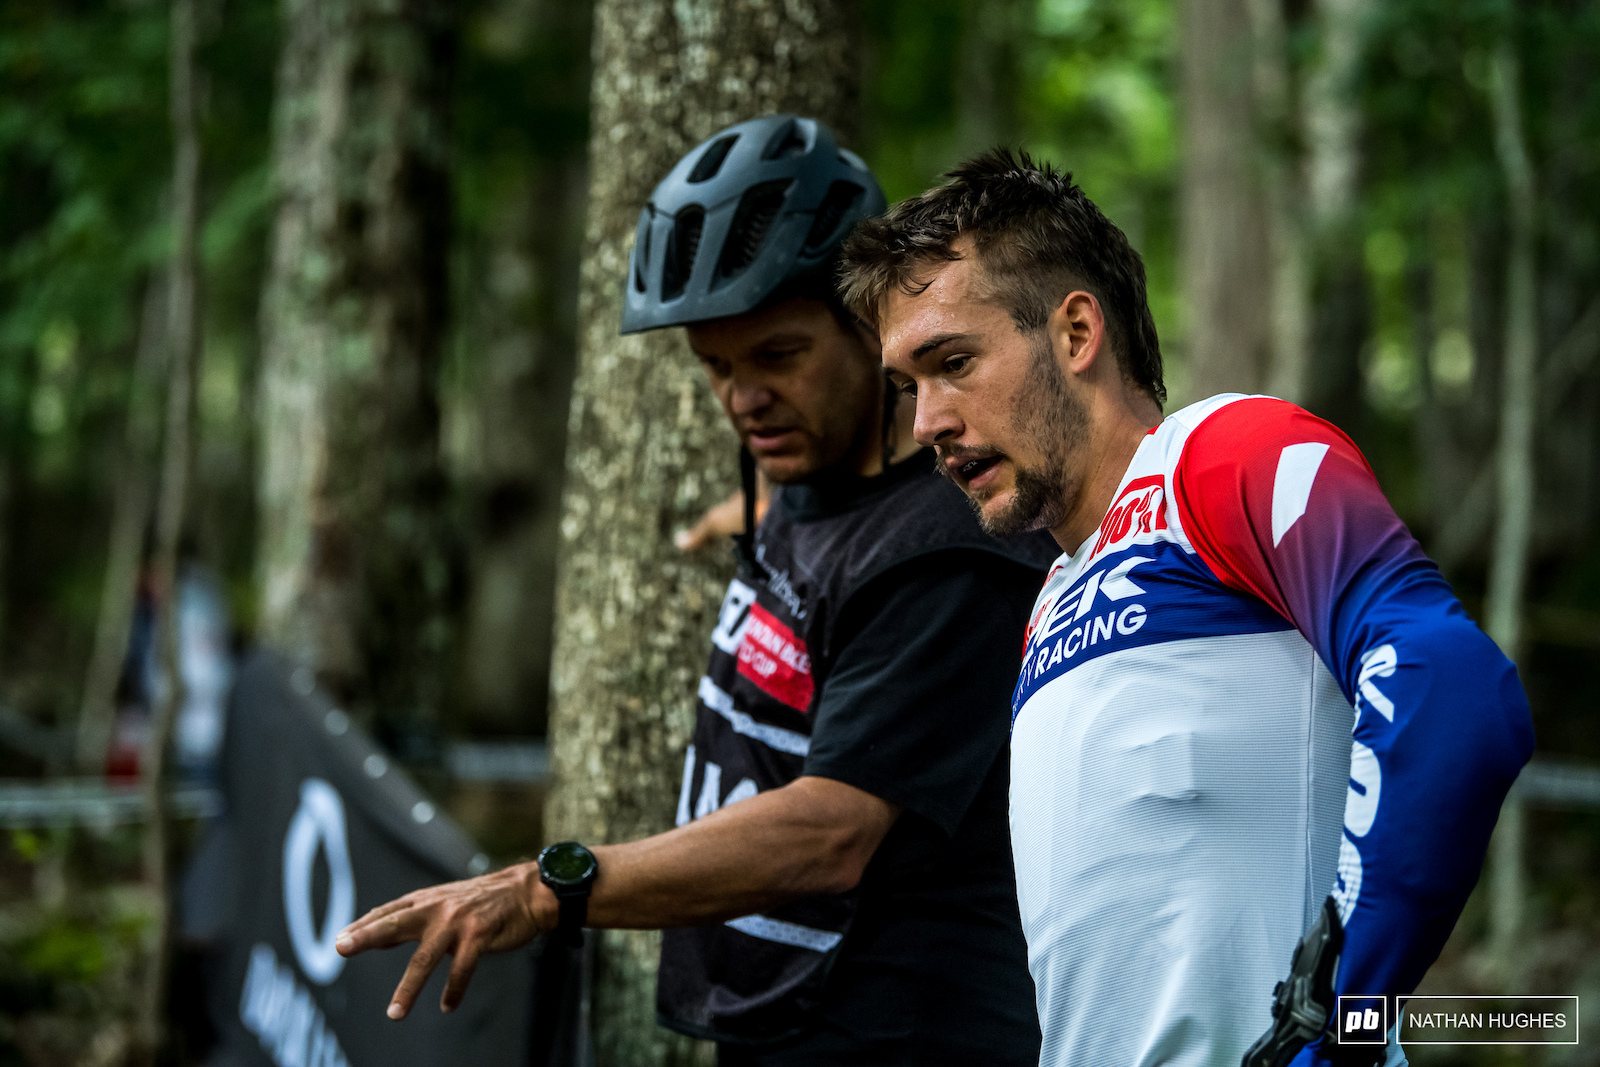 Andrew Shandro whispering the Rampage lines in Chuck s ear on his last lap before finals.